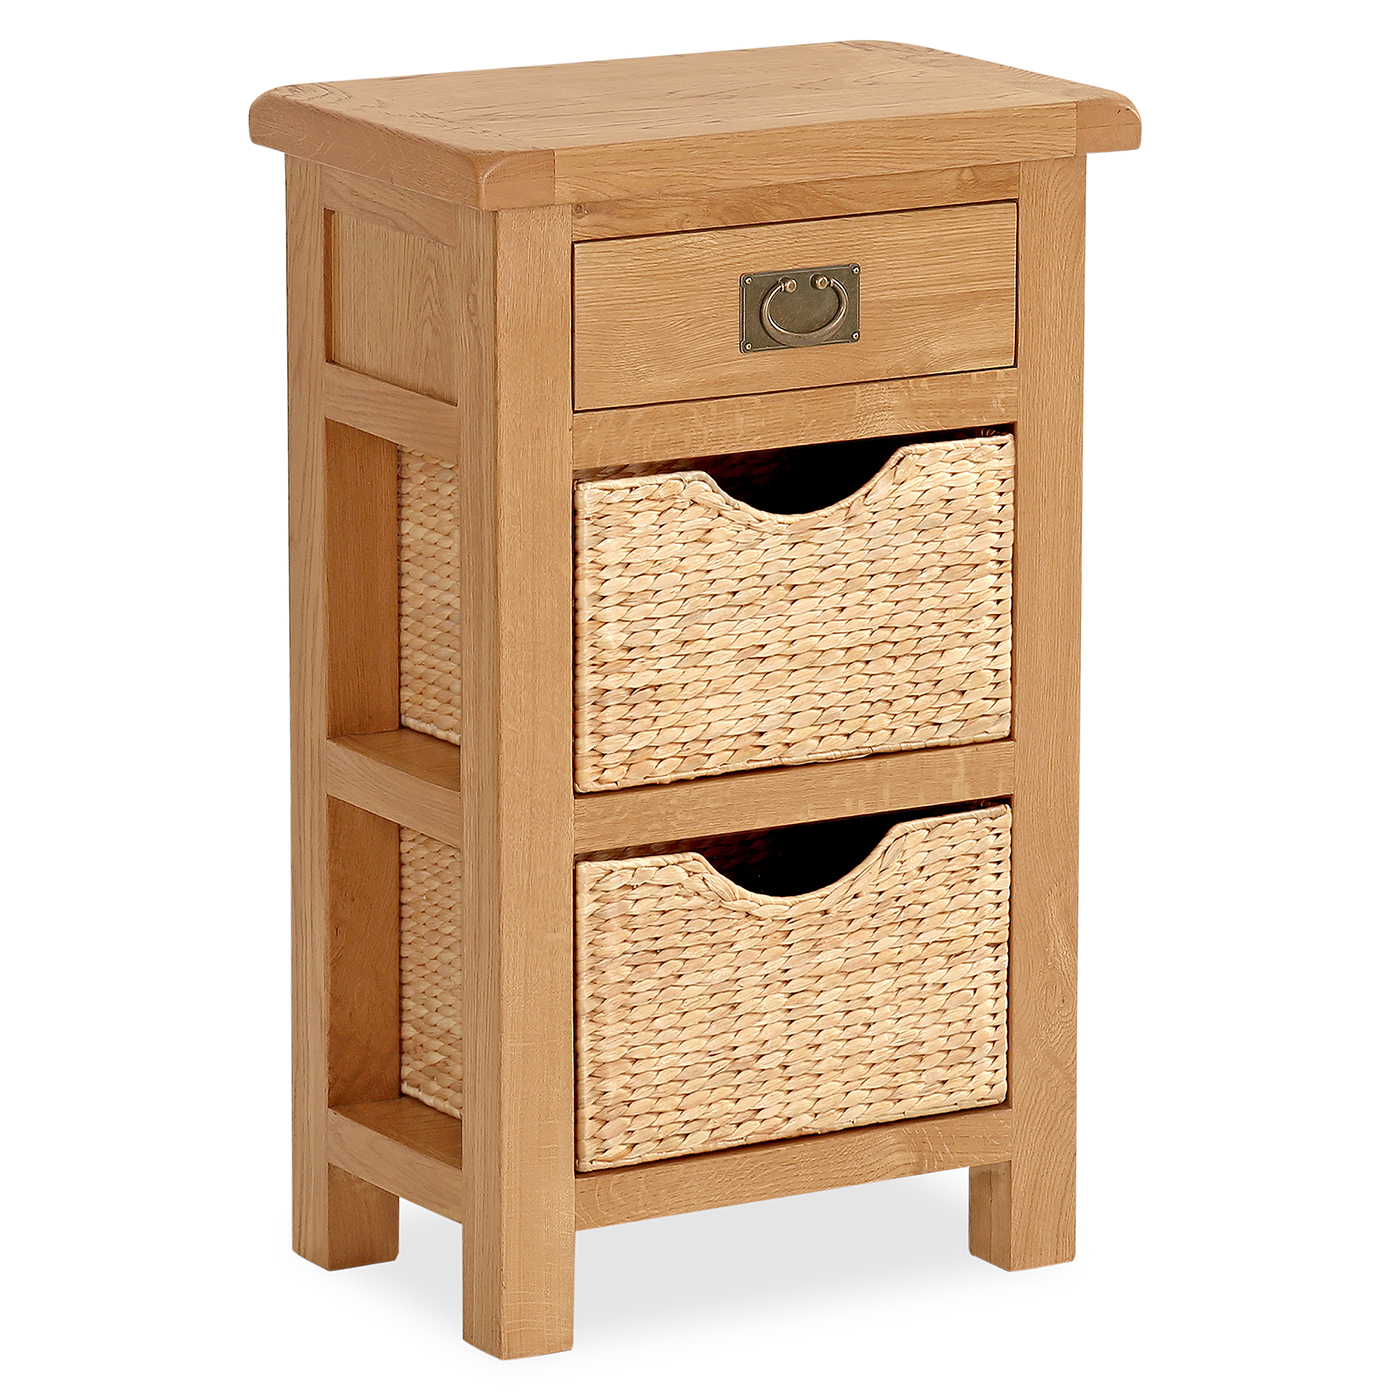 Salisbury Oak Furniture Telephone Table with Baskets